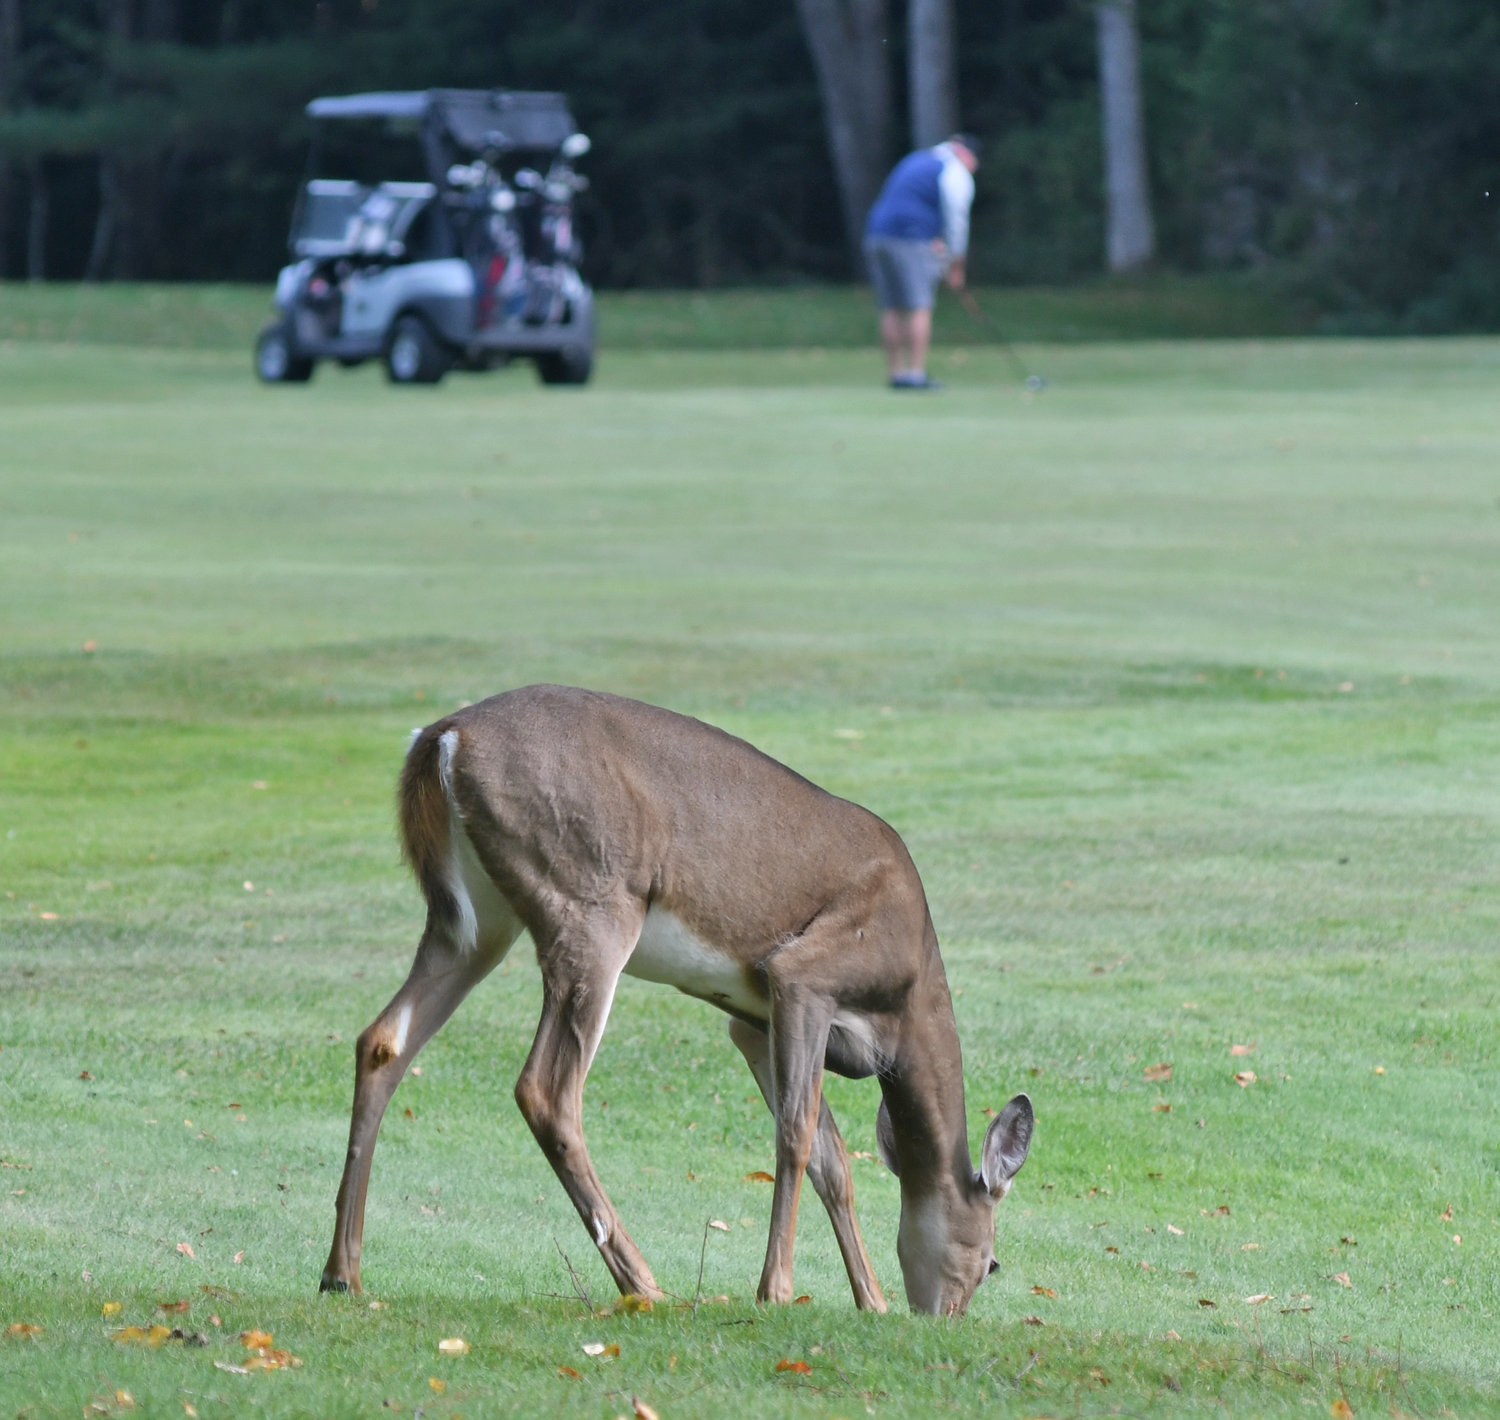 SNACK TIME — A deer grabs a quick snack while a golfer addresses the ball at Thendara Golf Club on Thursday afternoon.